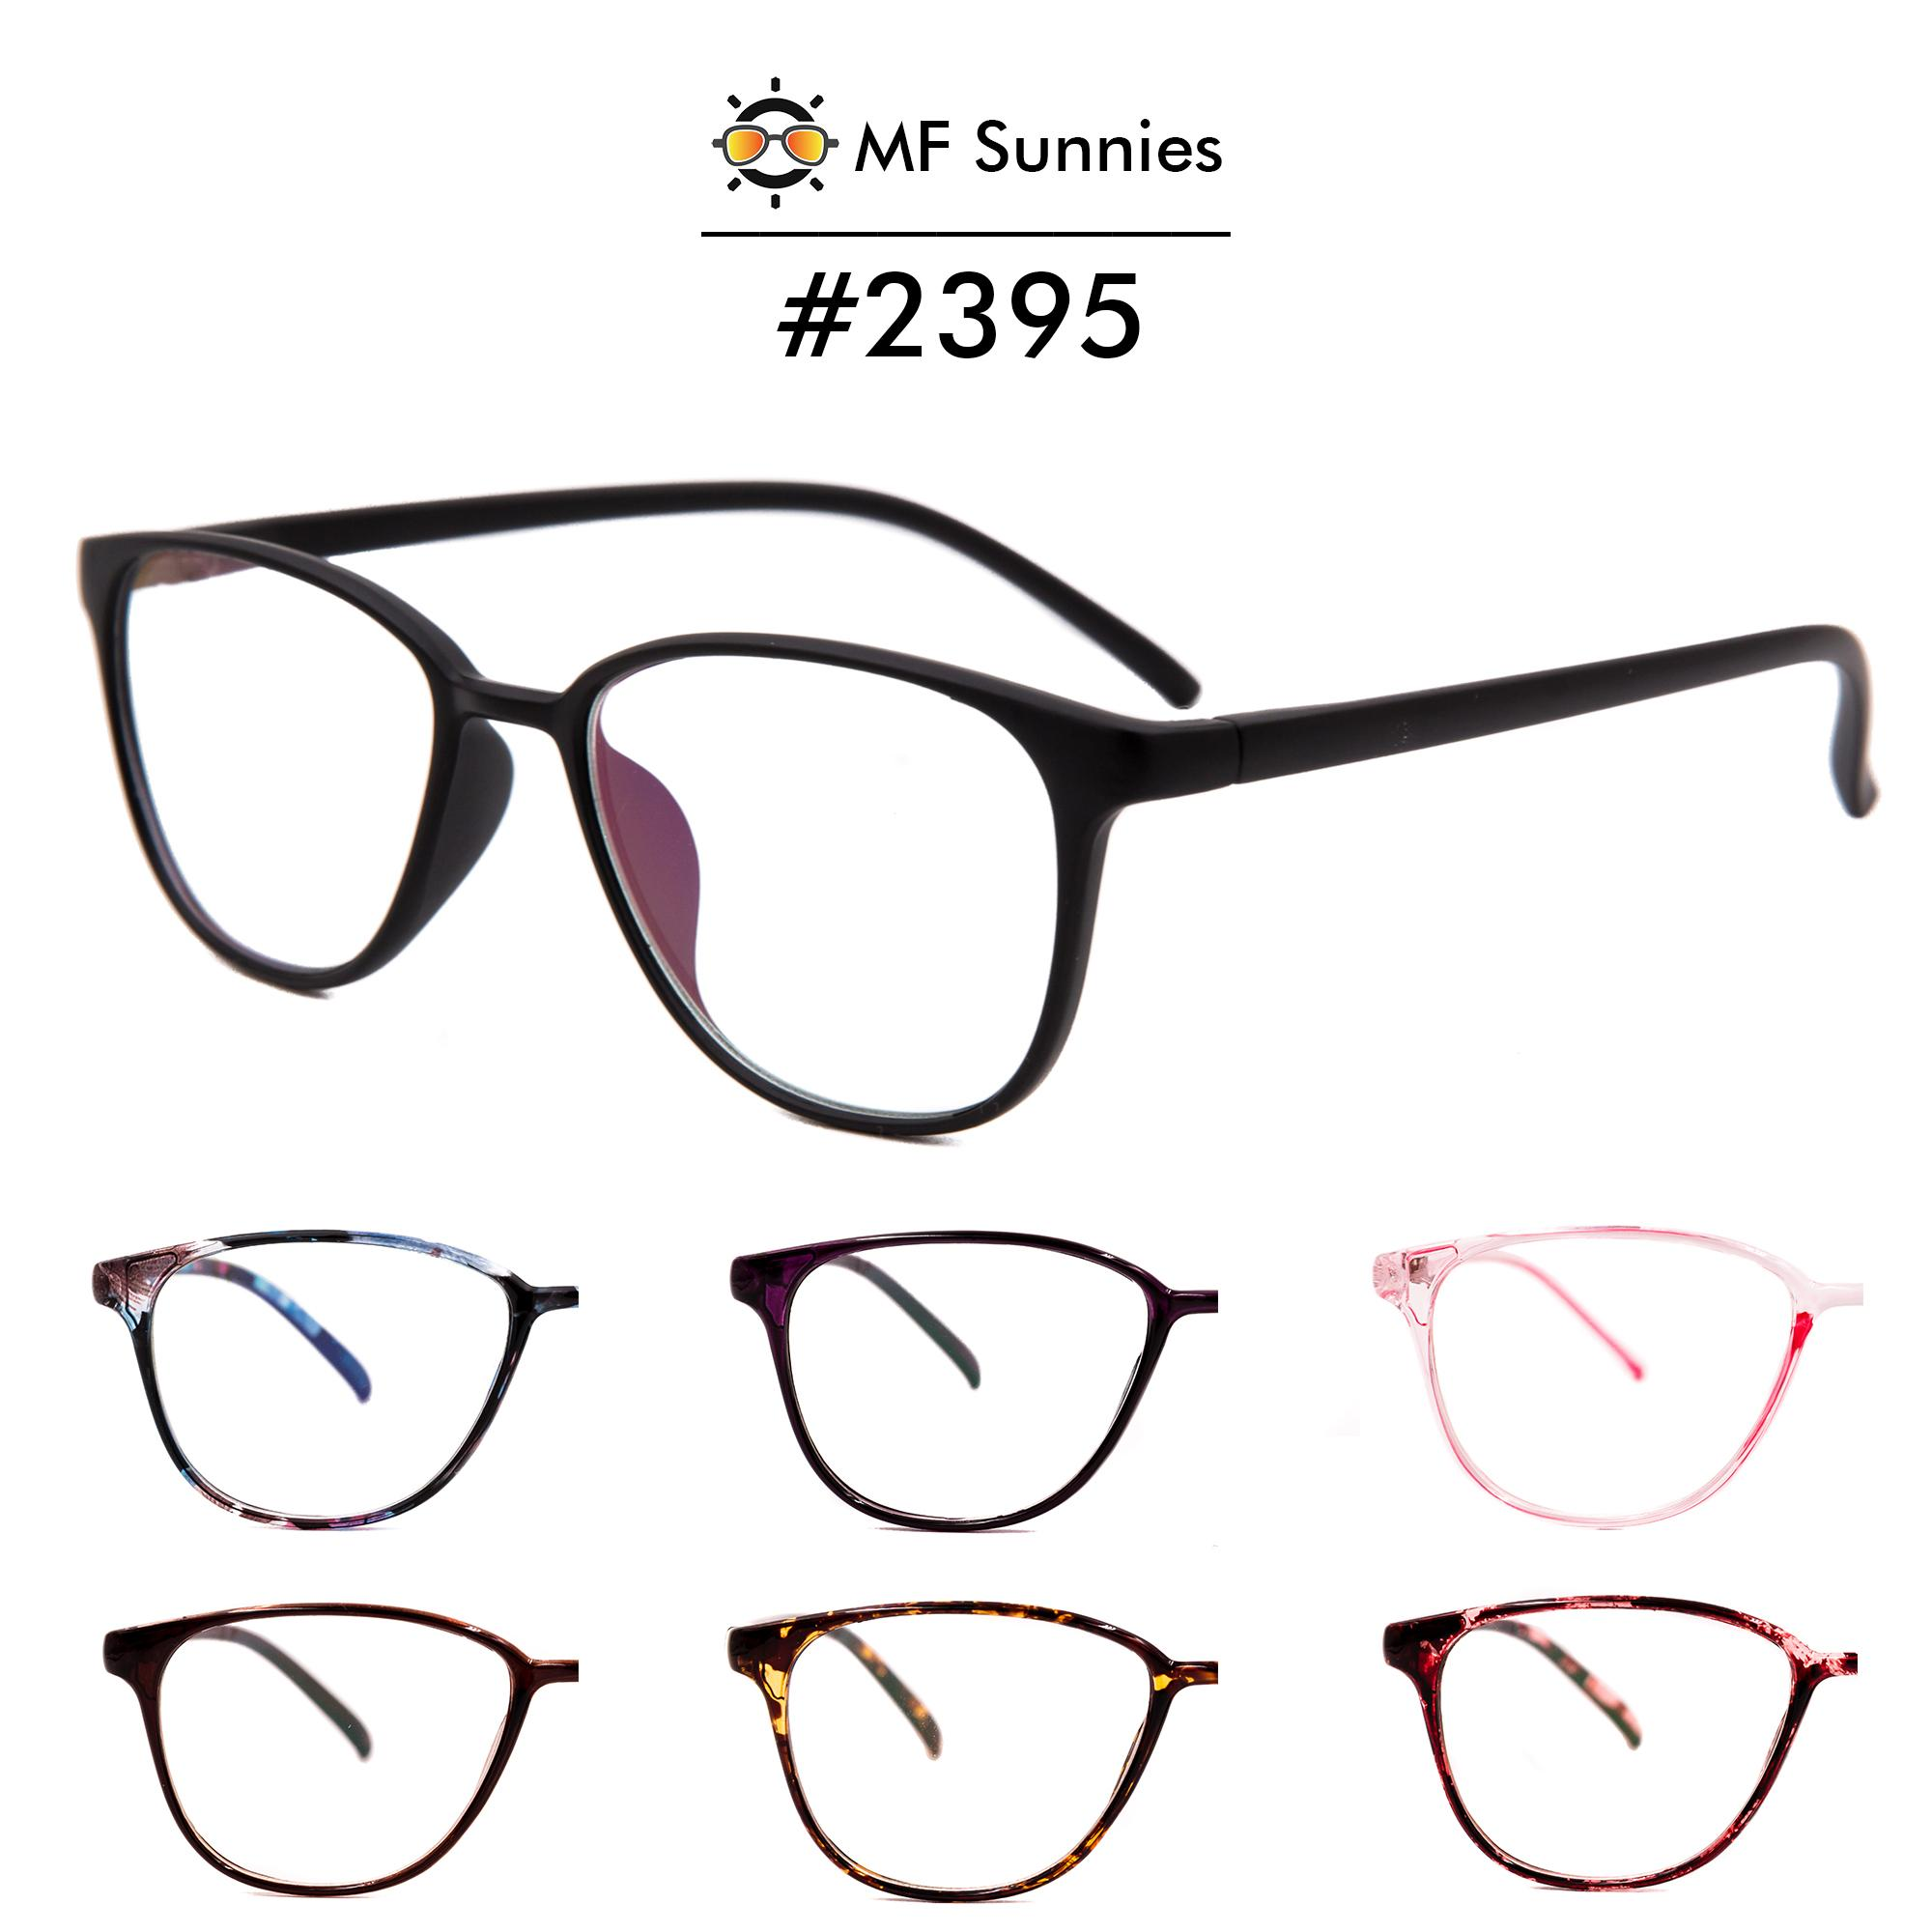 794828c42b MFSunnies Computer Anti Blue light Radiation Eyewear High quality frame  Premium Acetate material Metal Hinges